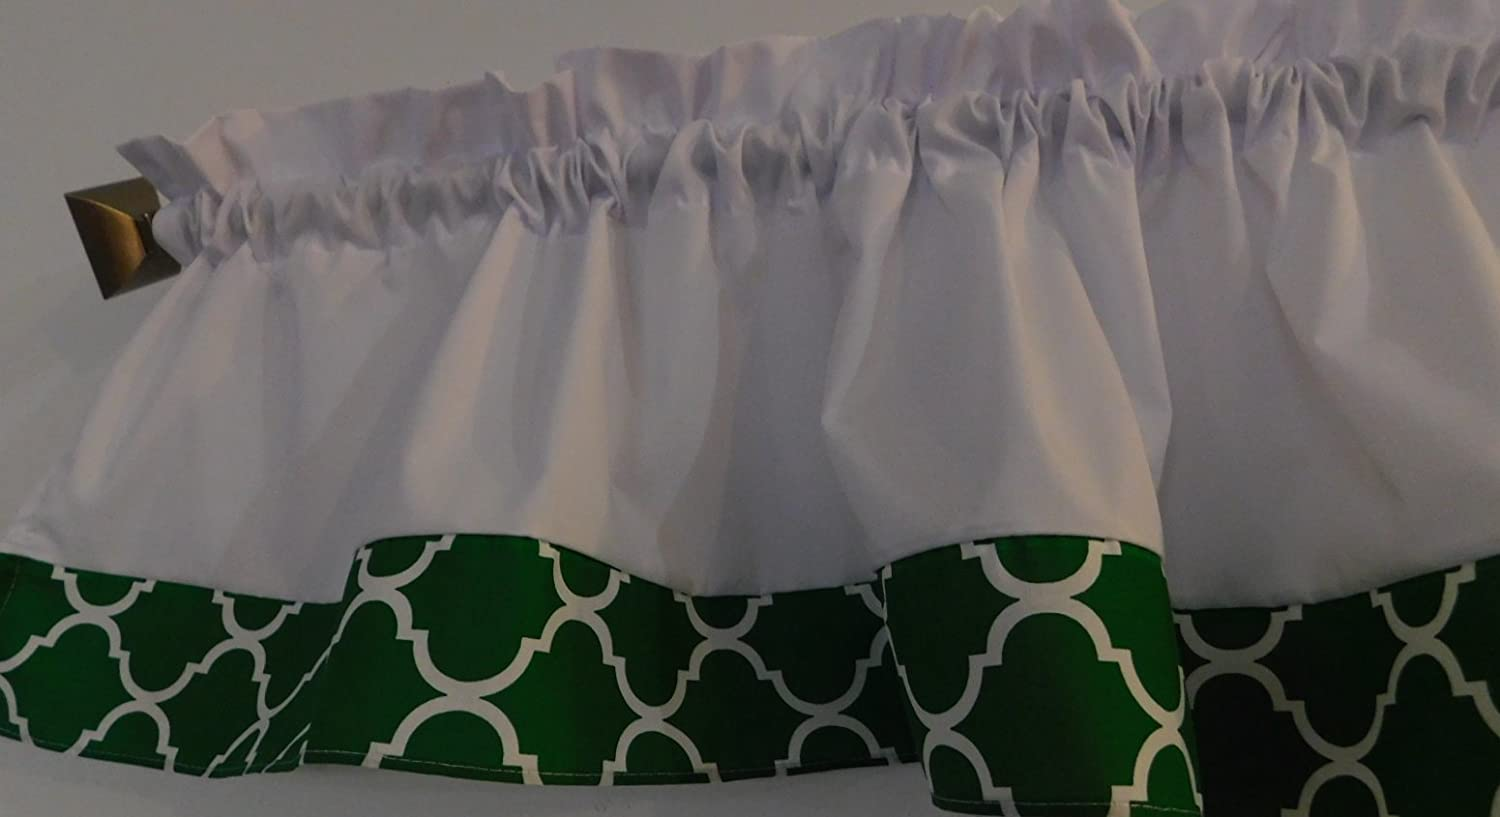 Valance Kelly green and white Trellis Window curtain / Kitchen, Bath, Laundry, Camper, RV, basement, kids playrooms, dorm, Bedroom , daycare schools, qua-trefoil Moroccan , 57